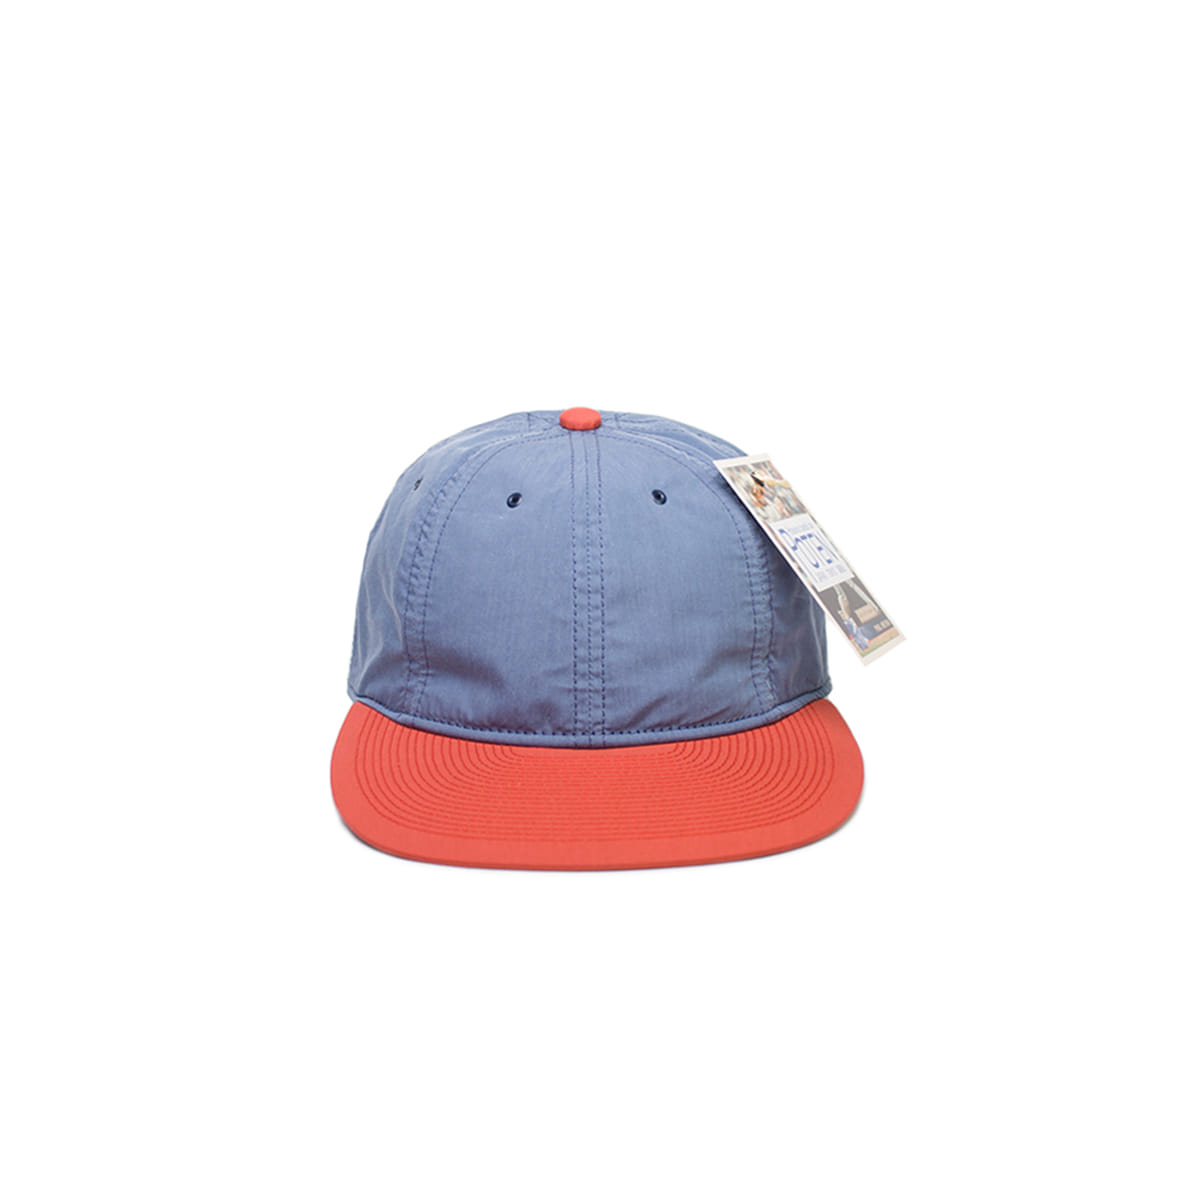 [POTEN] CN-TYPE 2 BASEBALL CAP 'BLUE / RED'